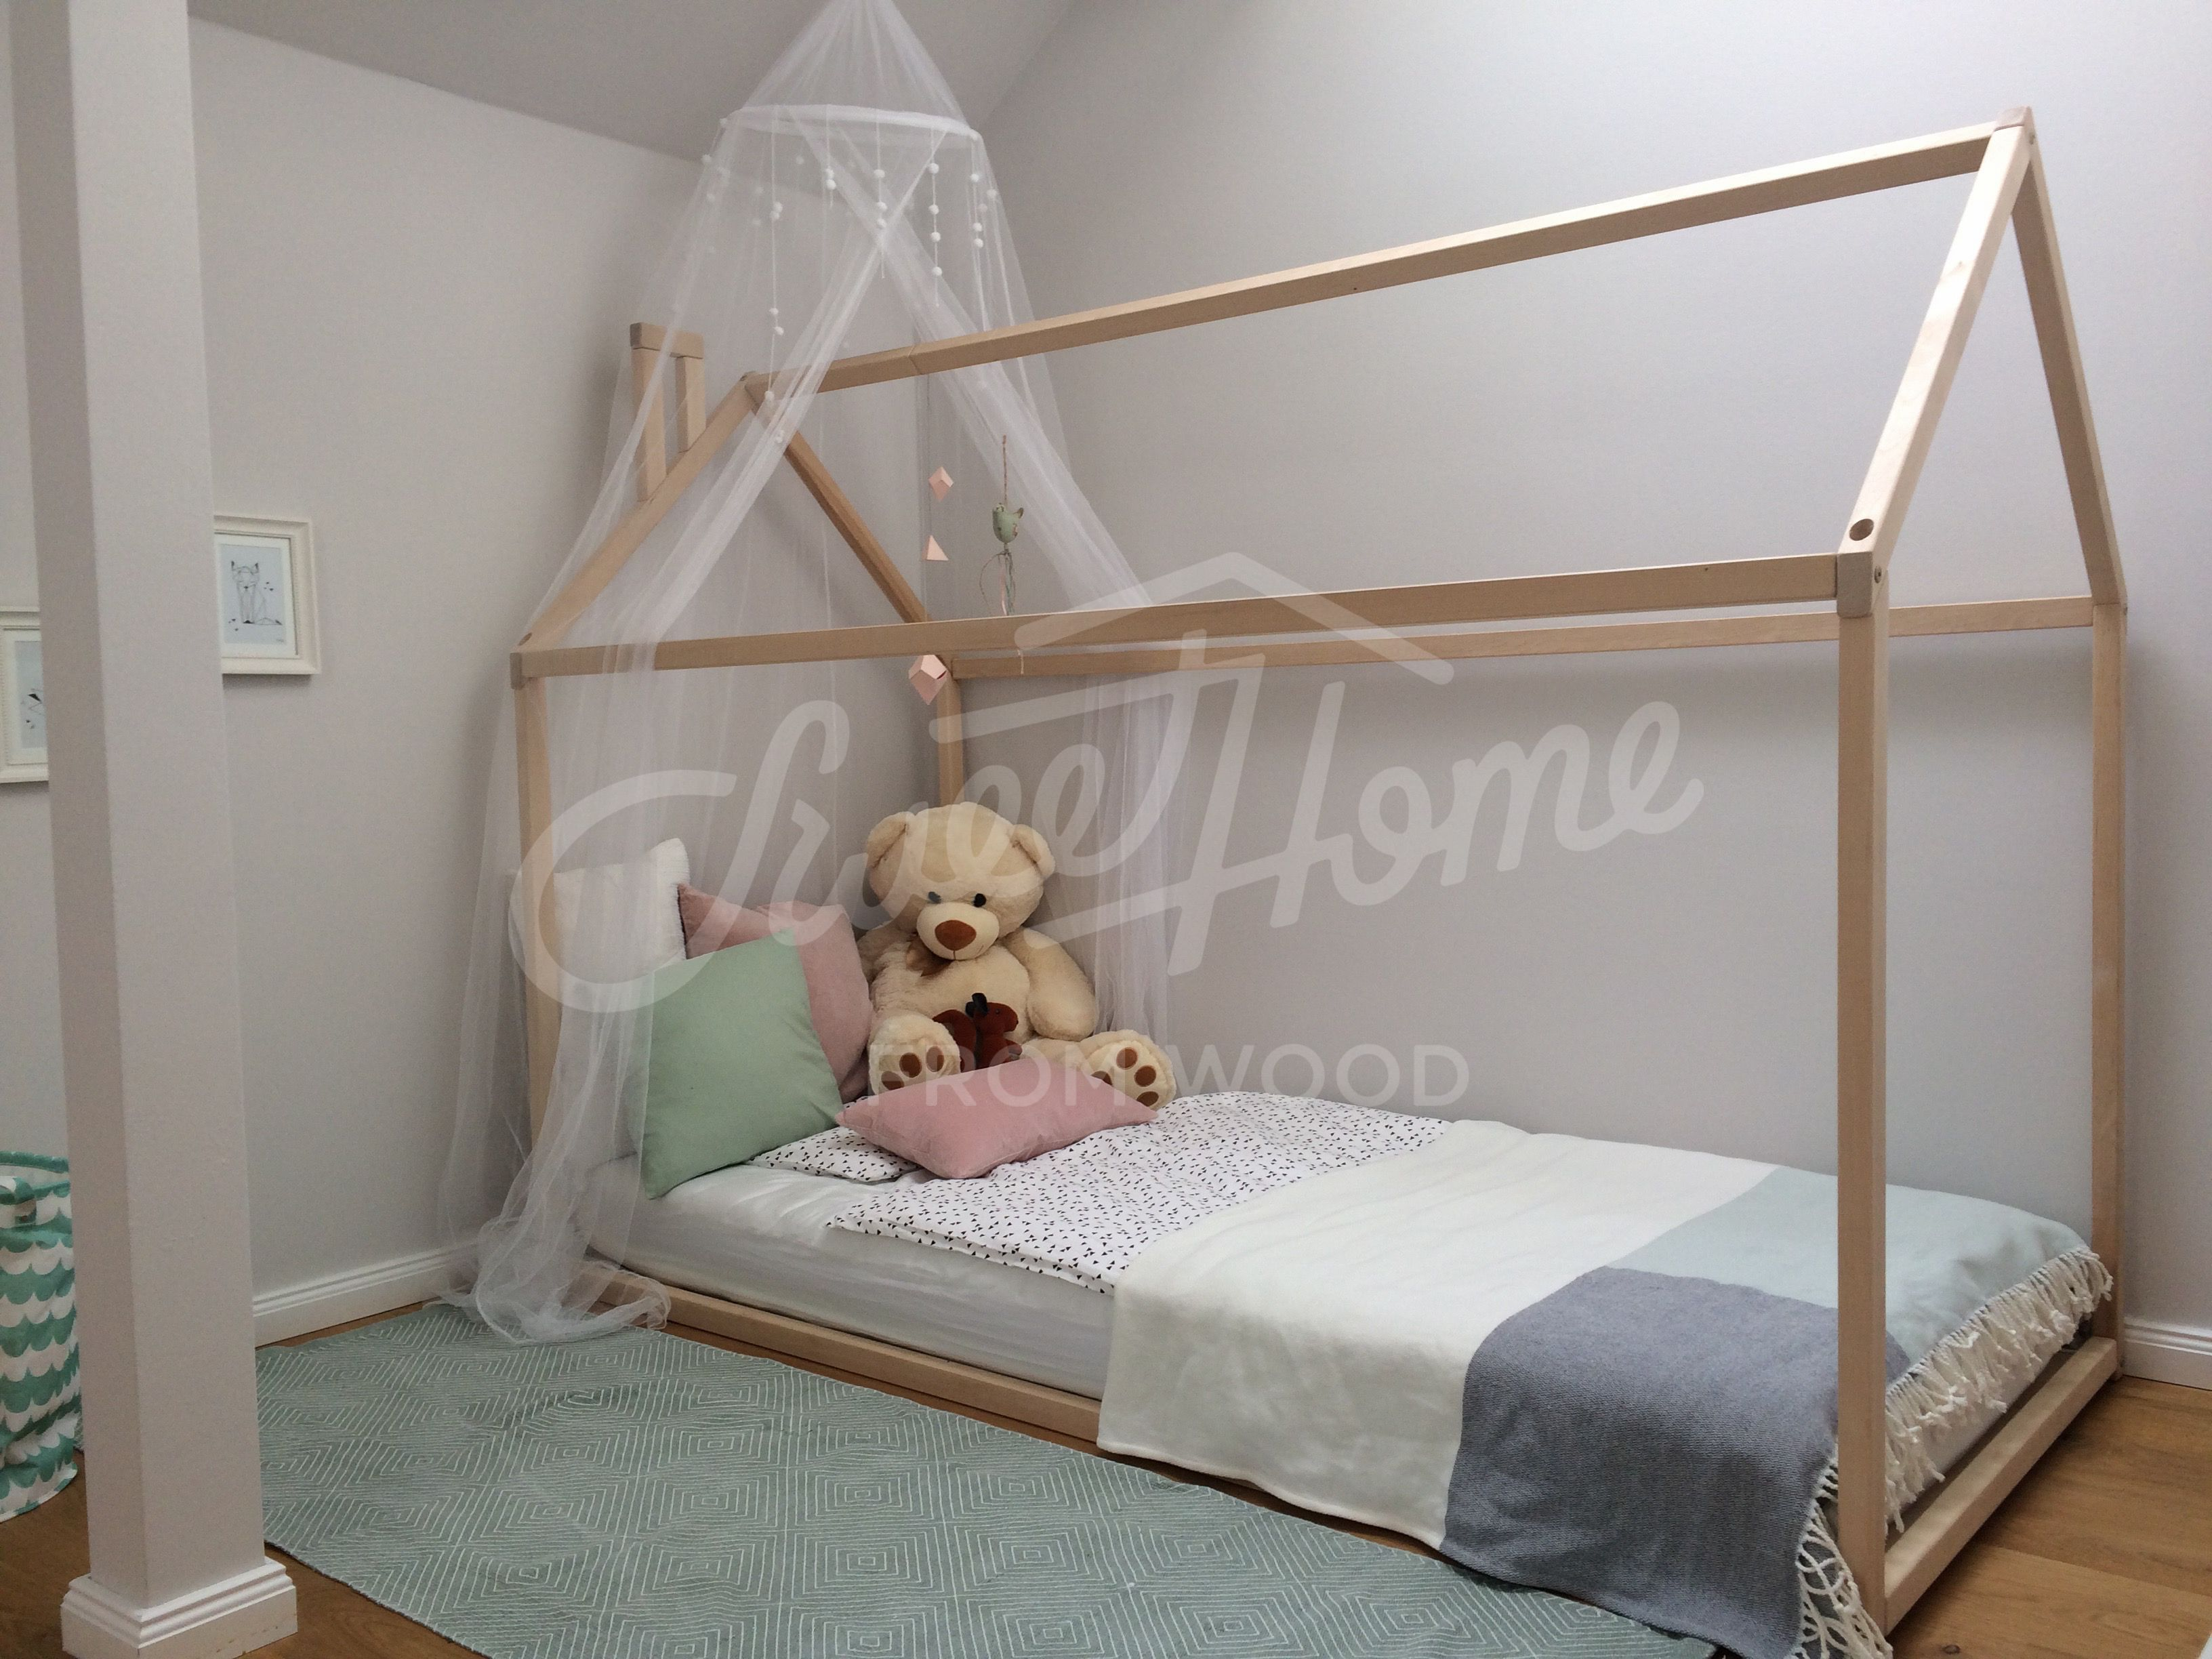 - Toddler Bed, House Bed, Children Bed, Wooden House, Tent Bed Wood